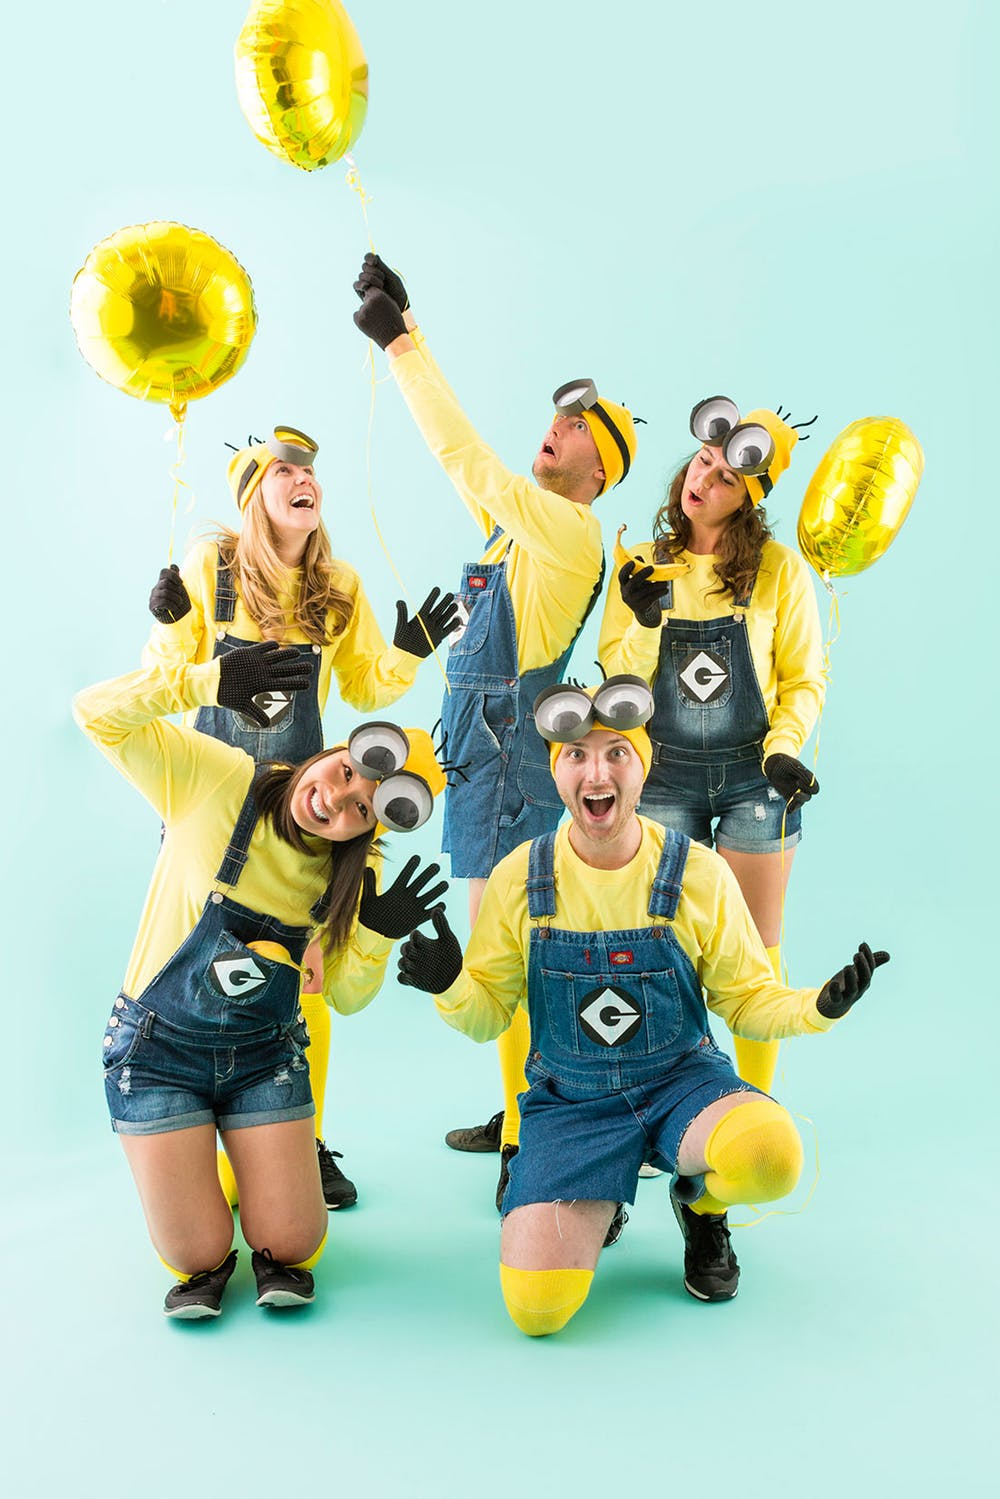 Groupe photo de costumes Halloween ridicules, choix de déguisement de groupe, les minions costumes adultes amusement